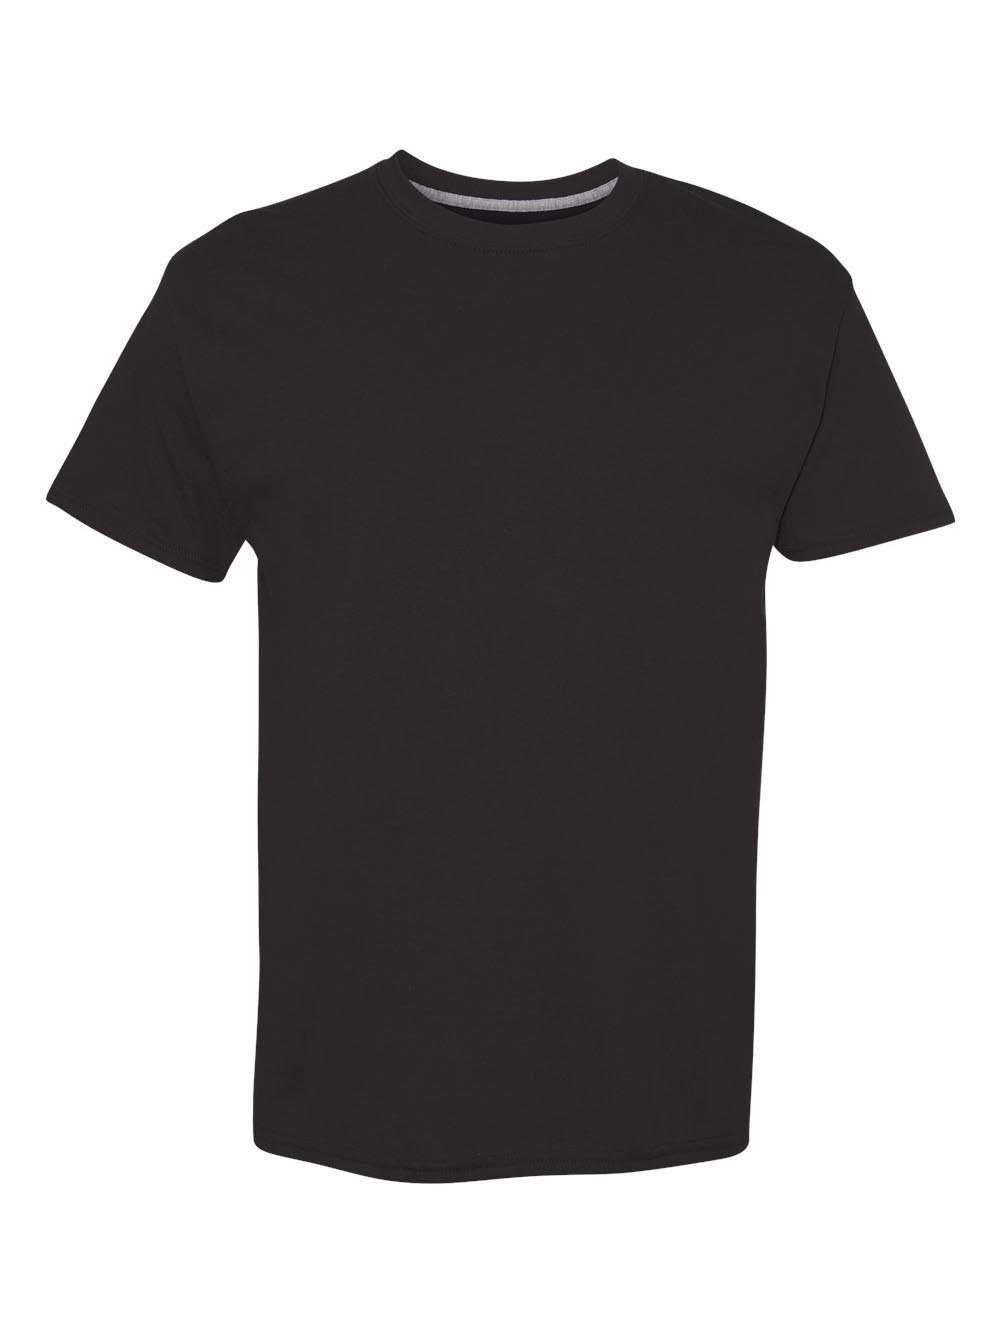 Hanes Men's 2 Pack X-Temp Performance T-Shirt, Black, 3X-Large